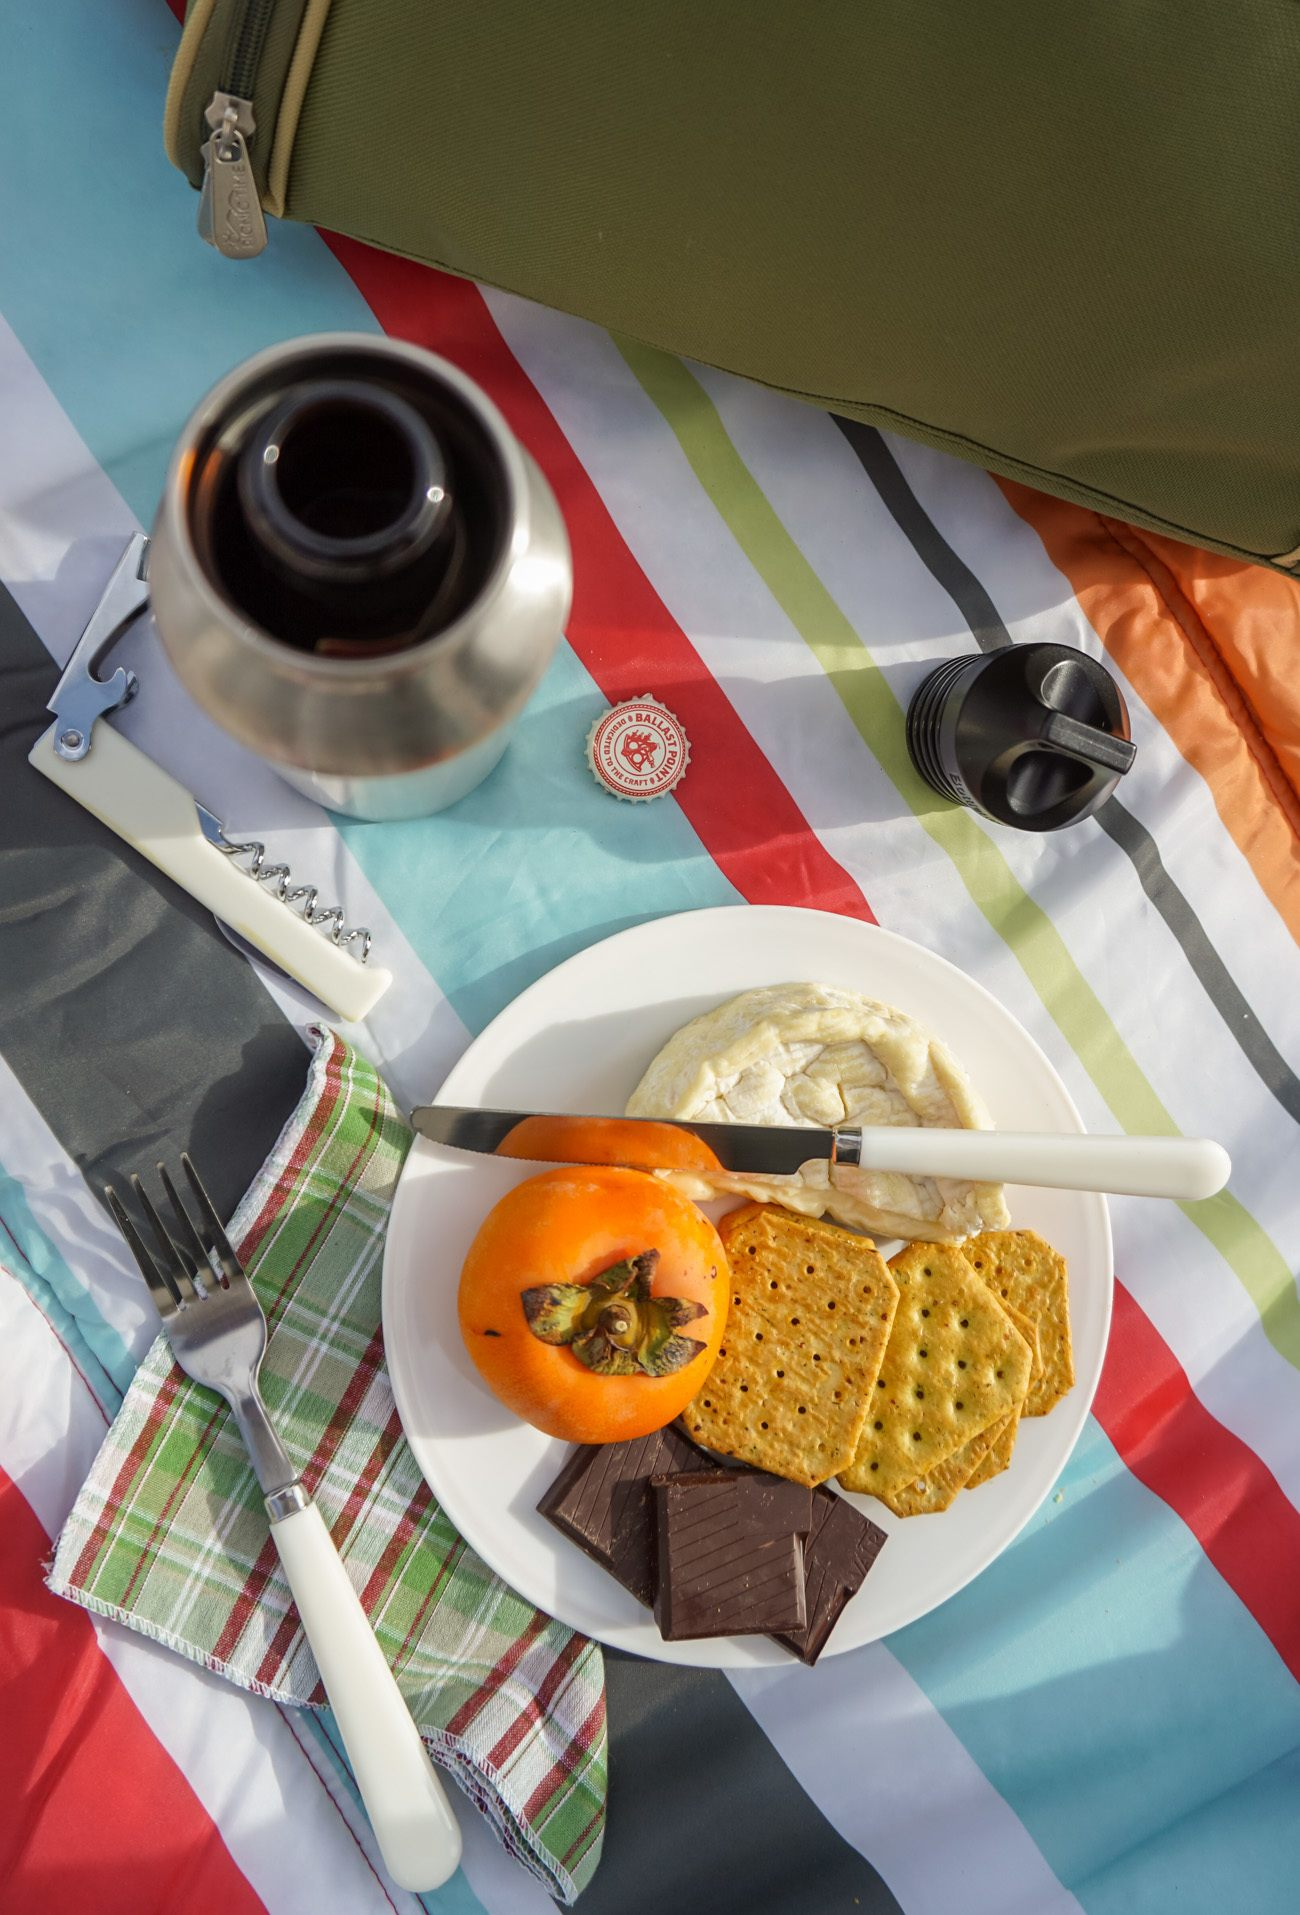 Take a Bottlekeeper with you on a picnic to keep your beer cold!